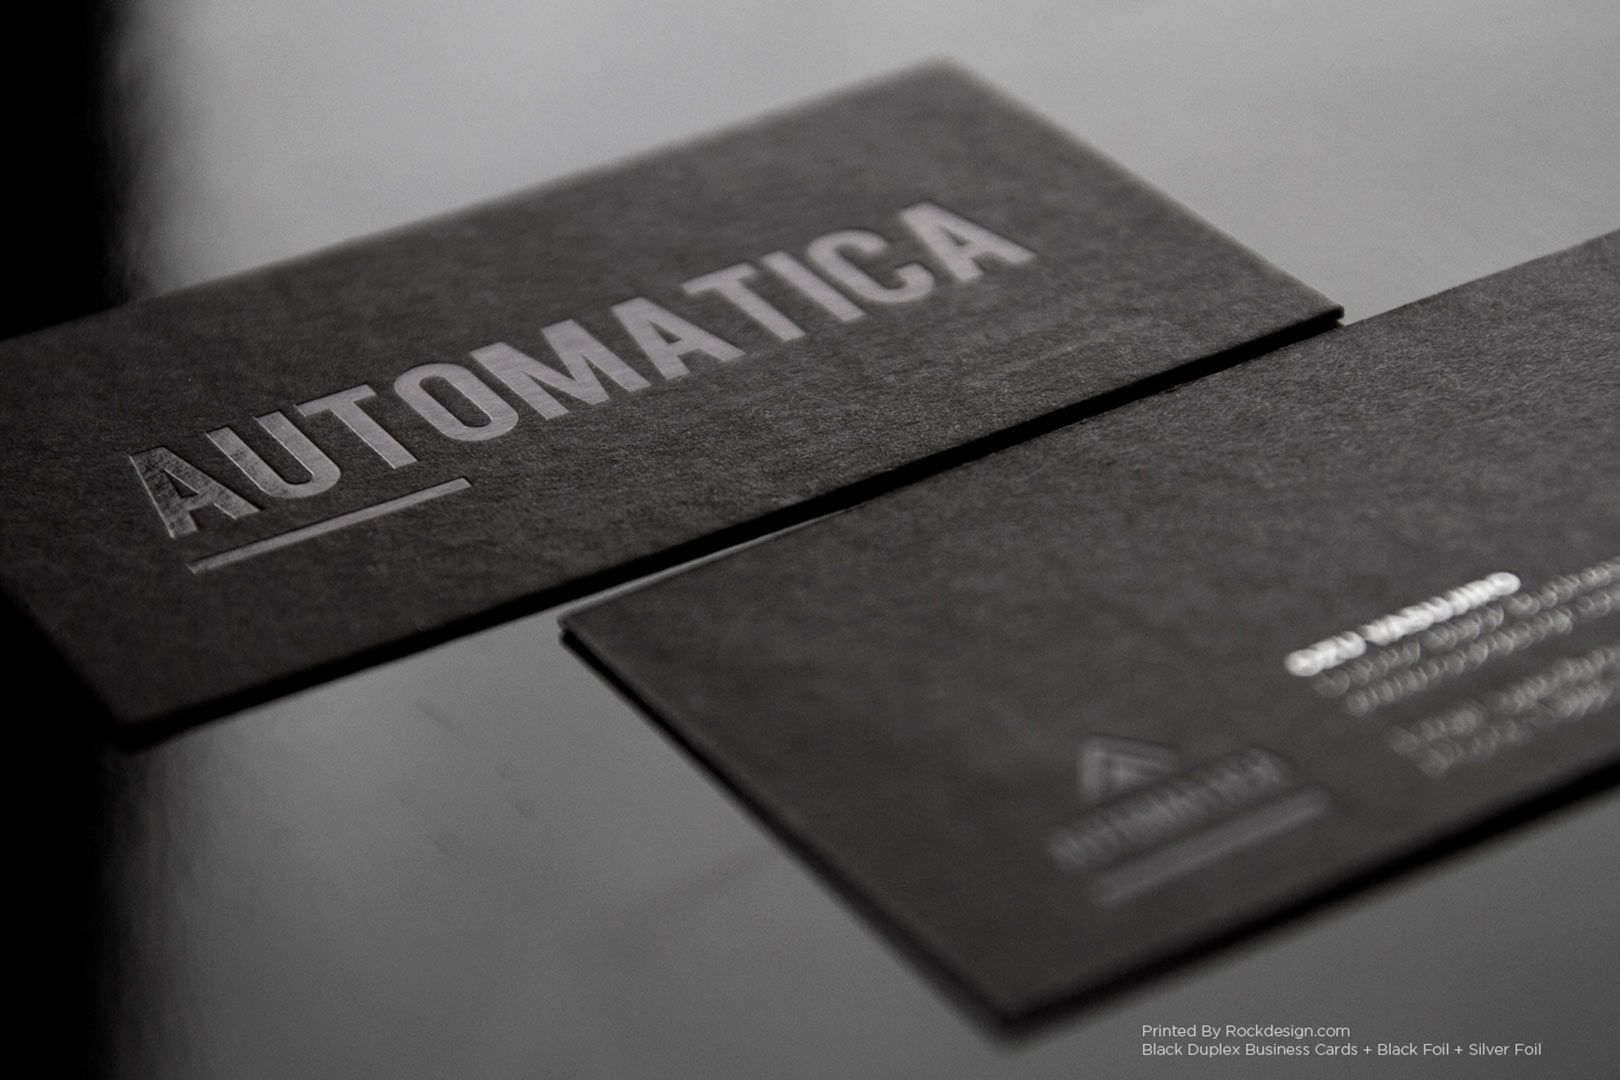 Minimalist business card template automatica rockdesign luxury free business card templates for rockdesign print customers order a professional business card template online choose from our wide selection of business reheart Choice Image